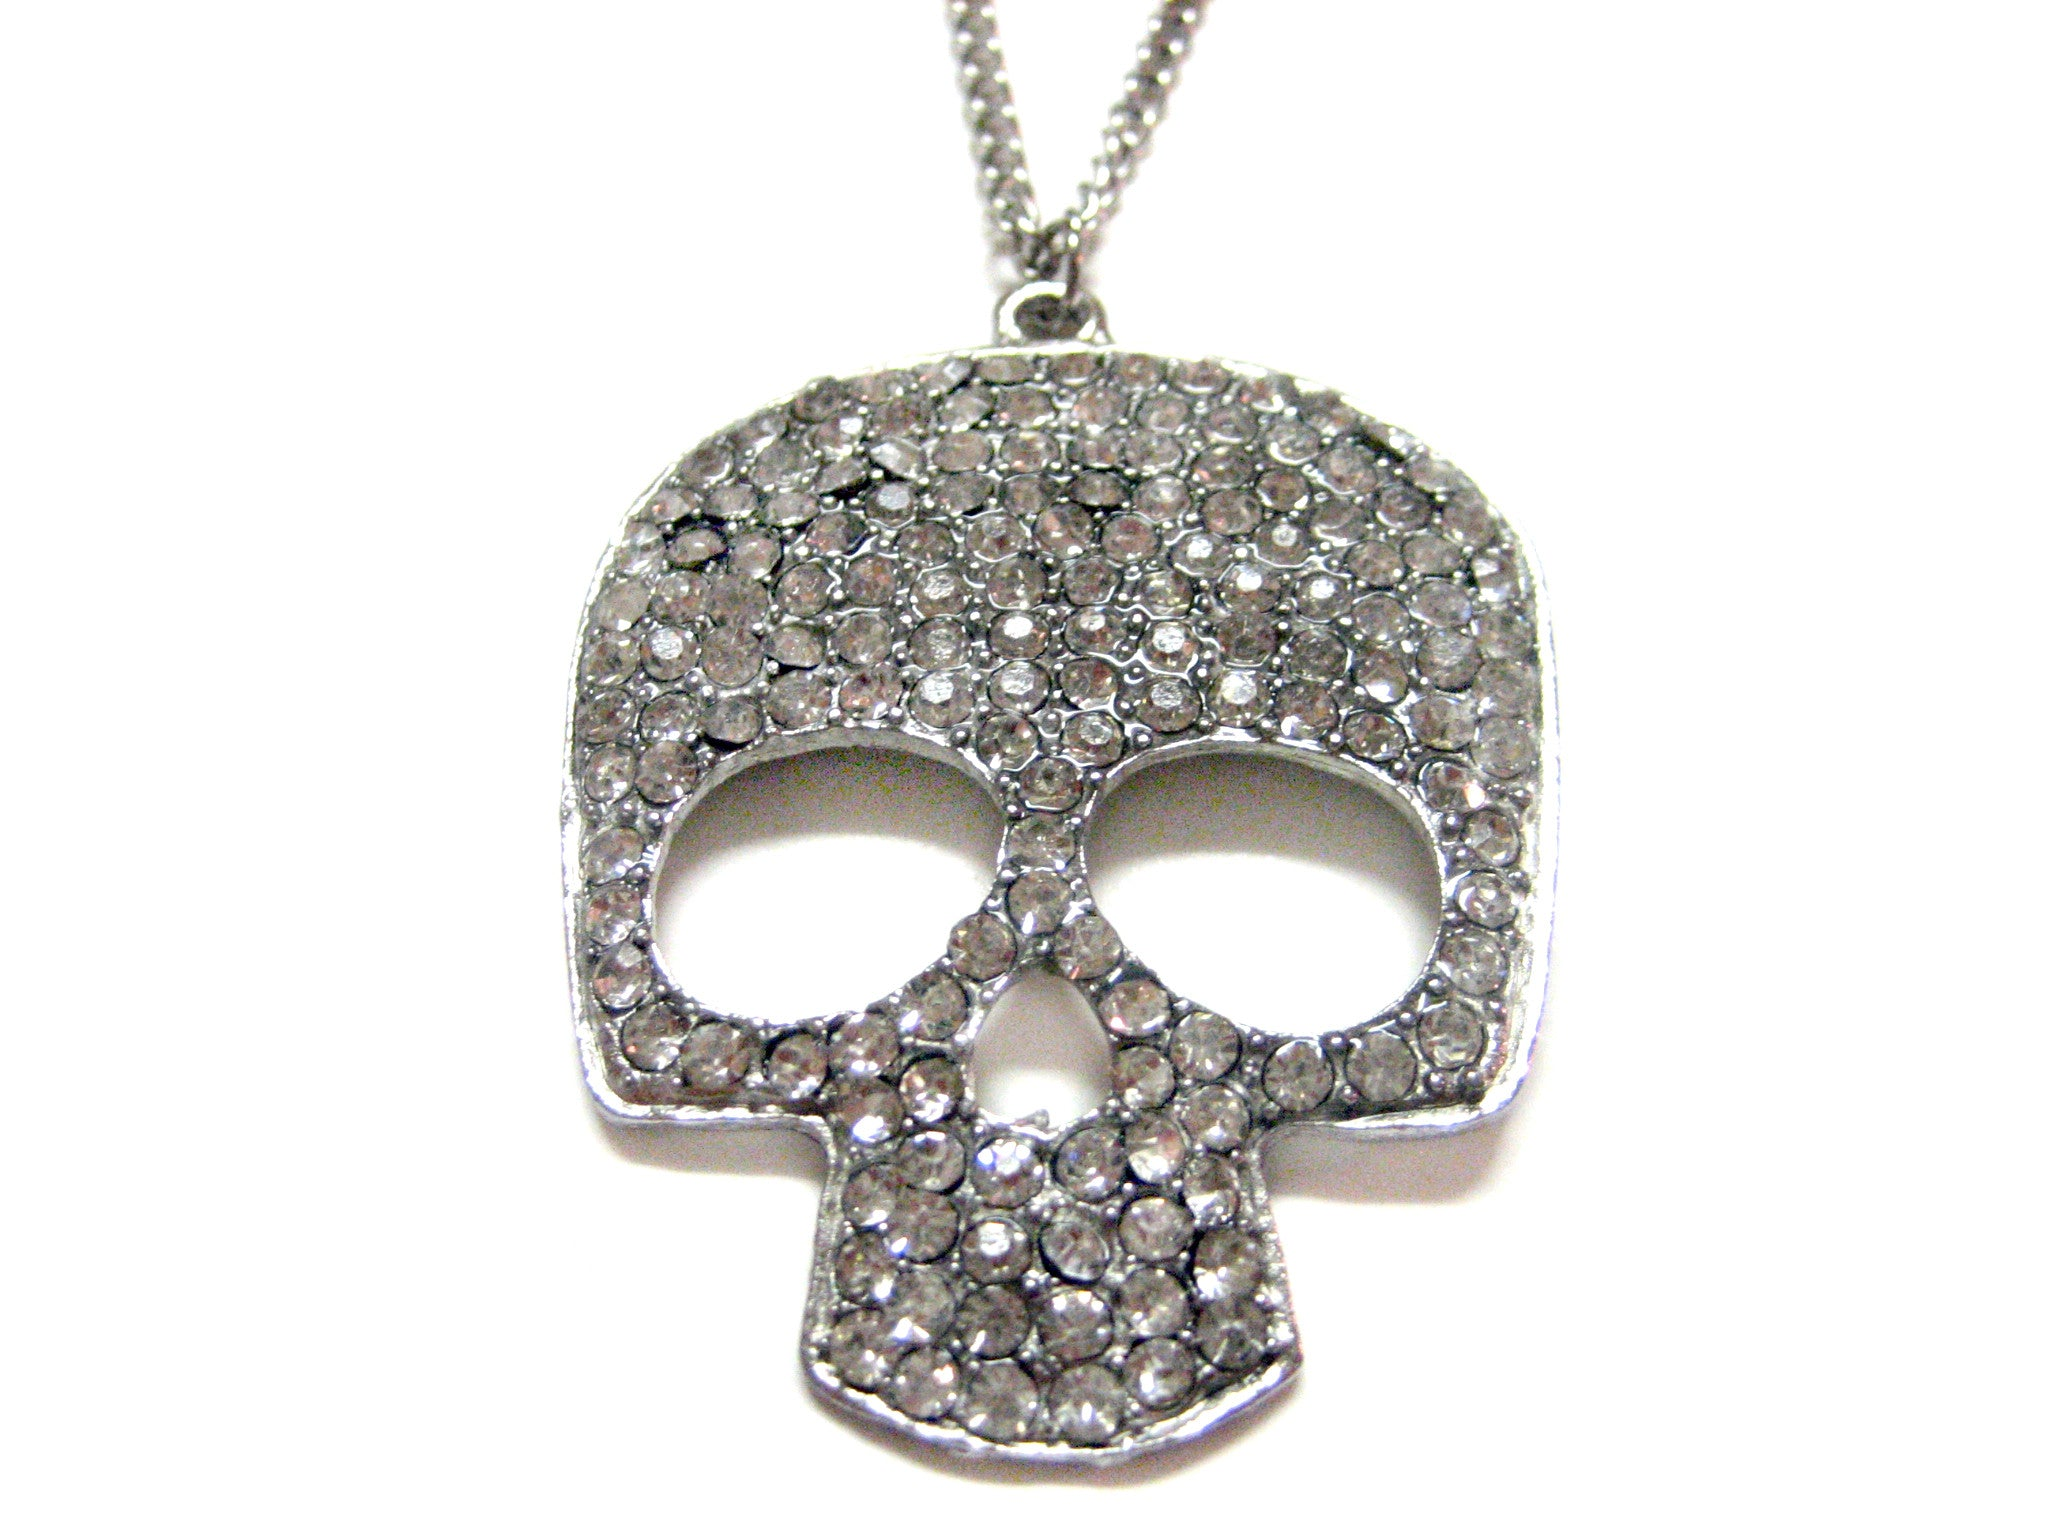 Large Crystallized Silver Toned Skull Pendant Necklace